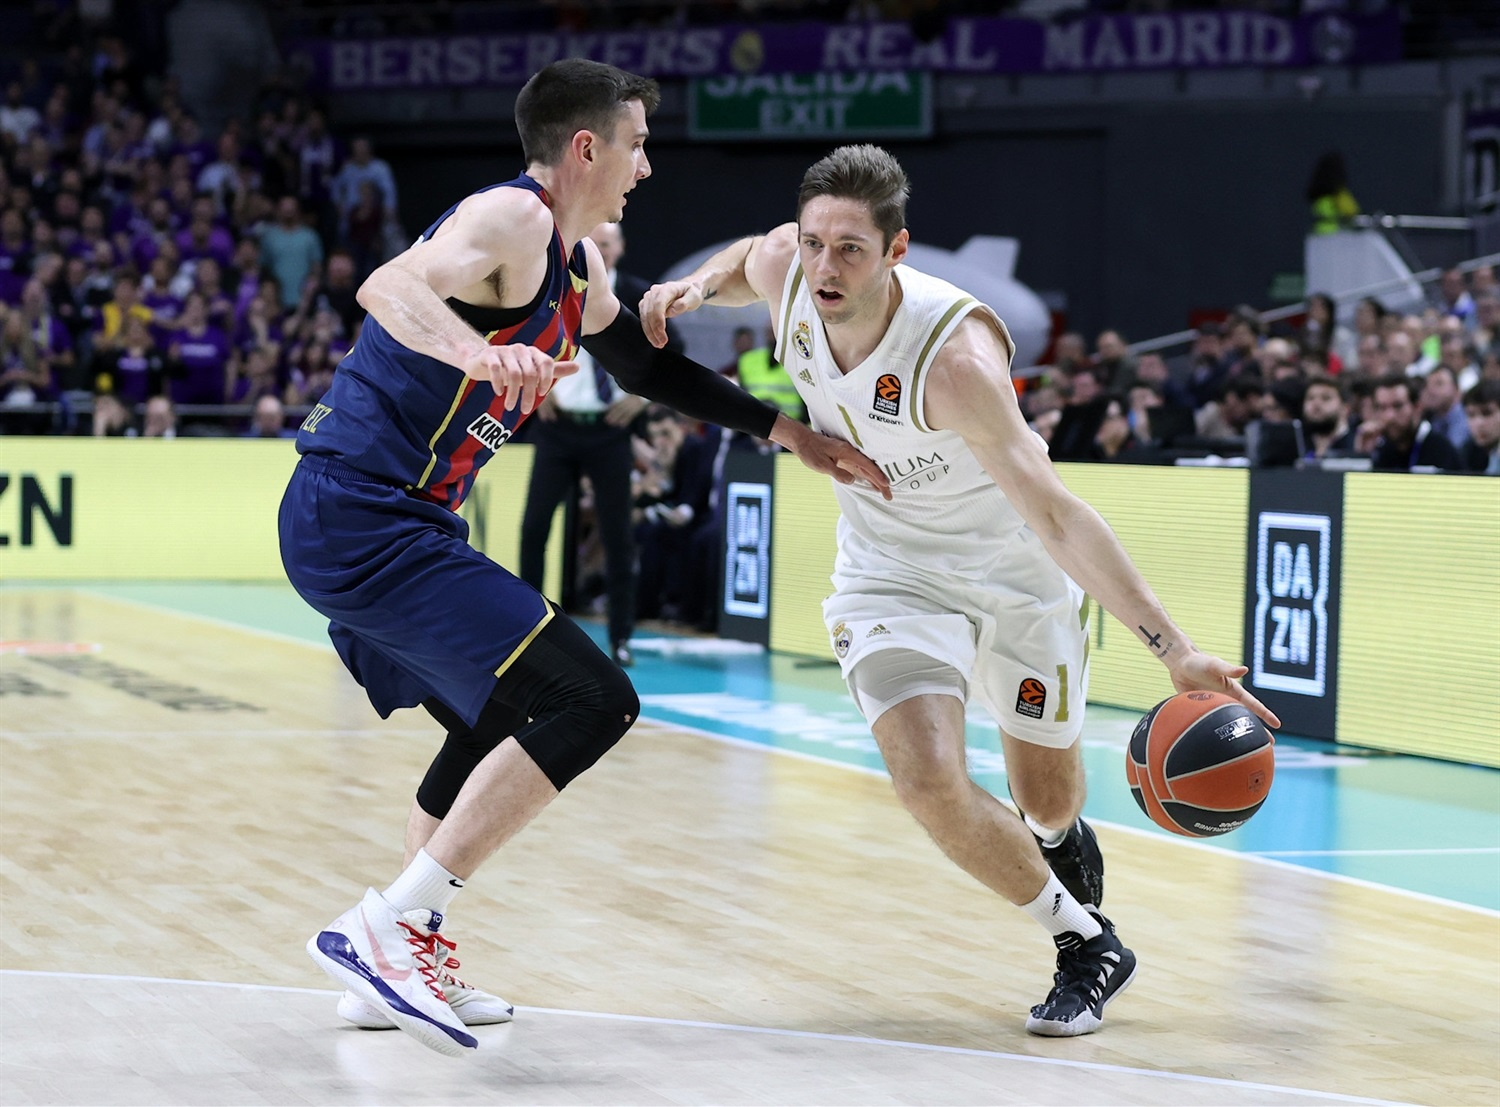 Fabien Causeur - Real Madrid - EB19